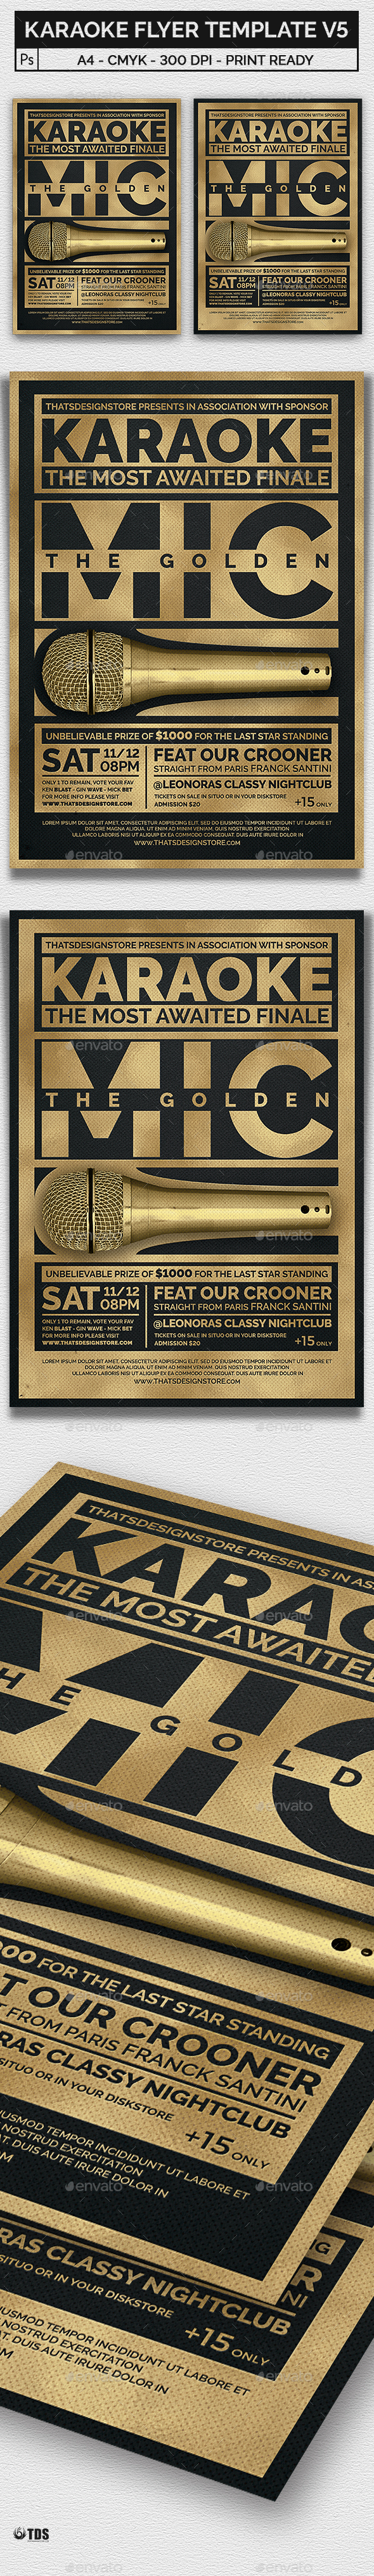 Karaoke Flyer Template V5 - Concerts Events